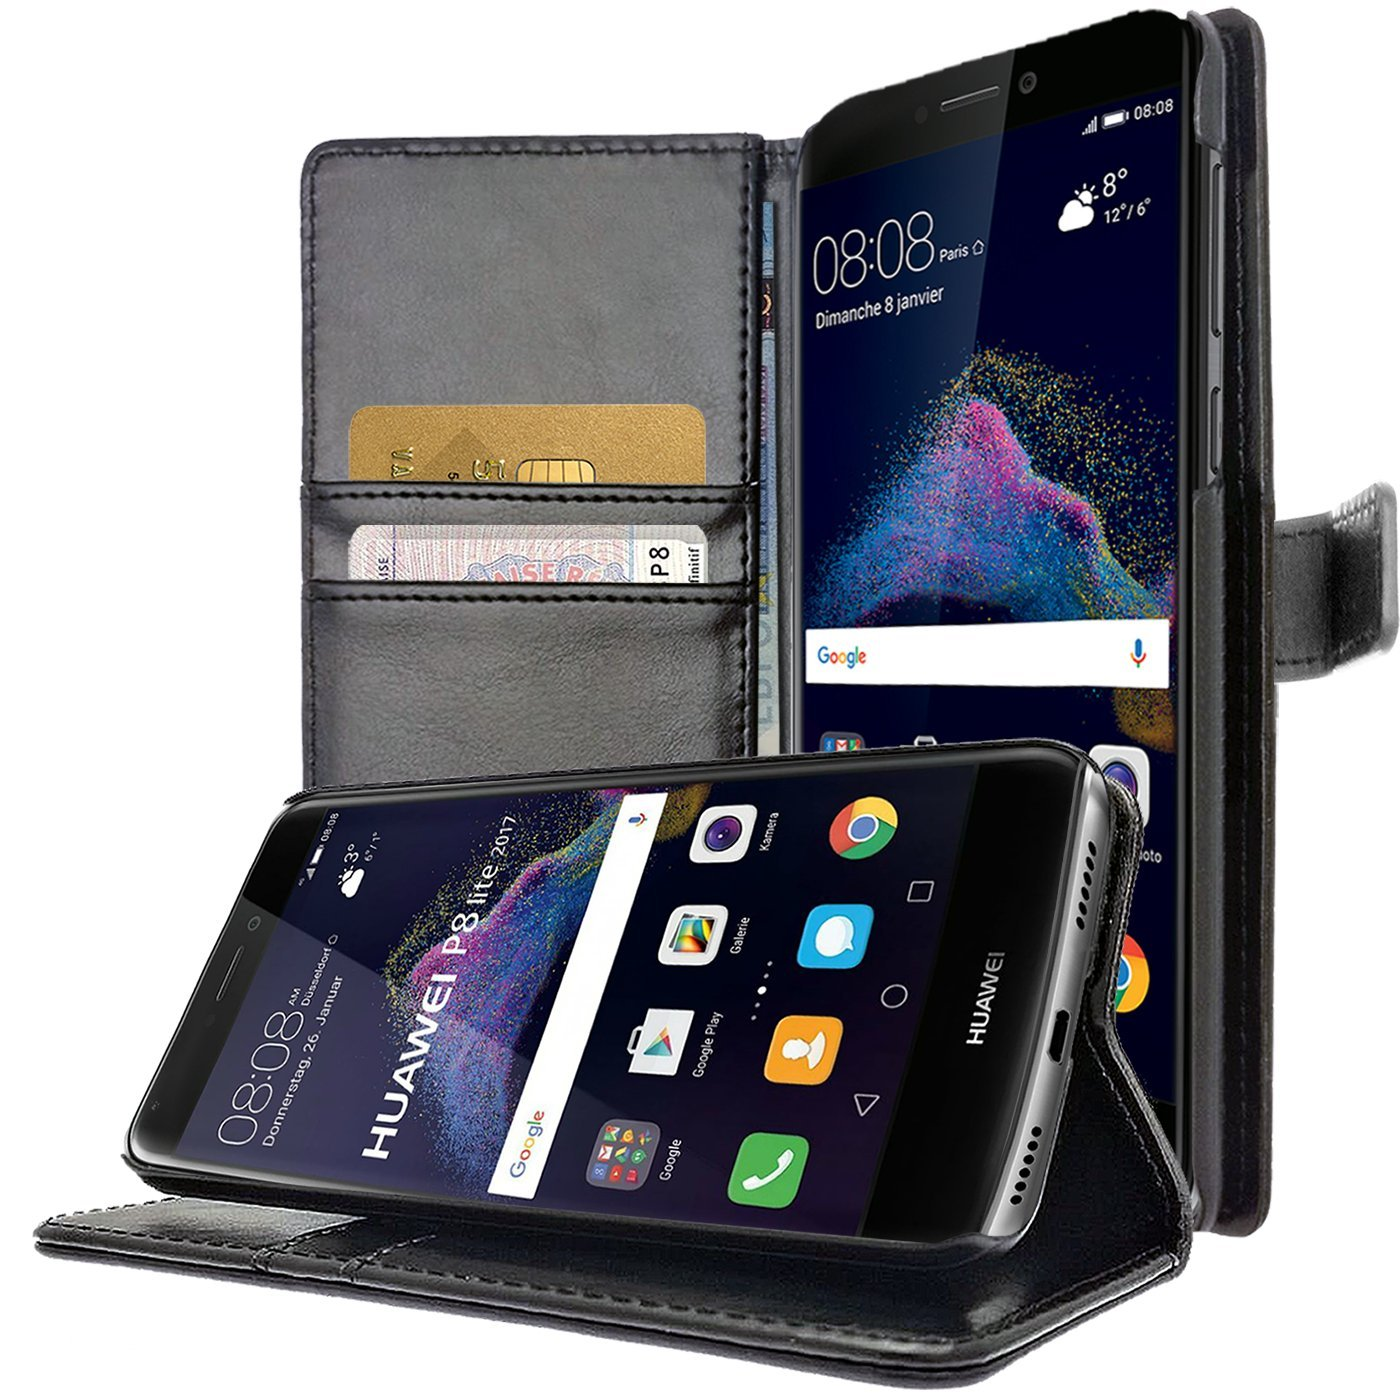 coque protection pour huawei p8 lite 2017